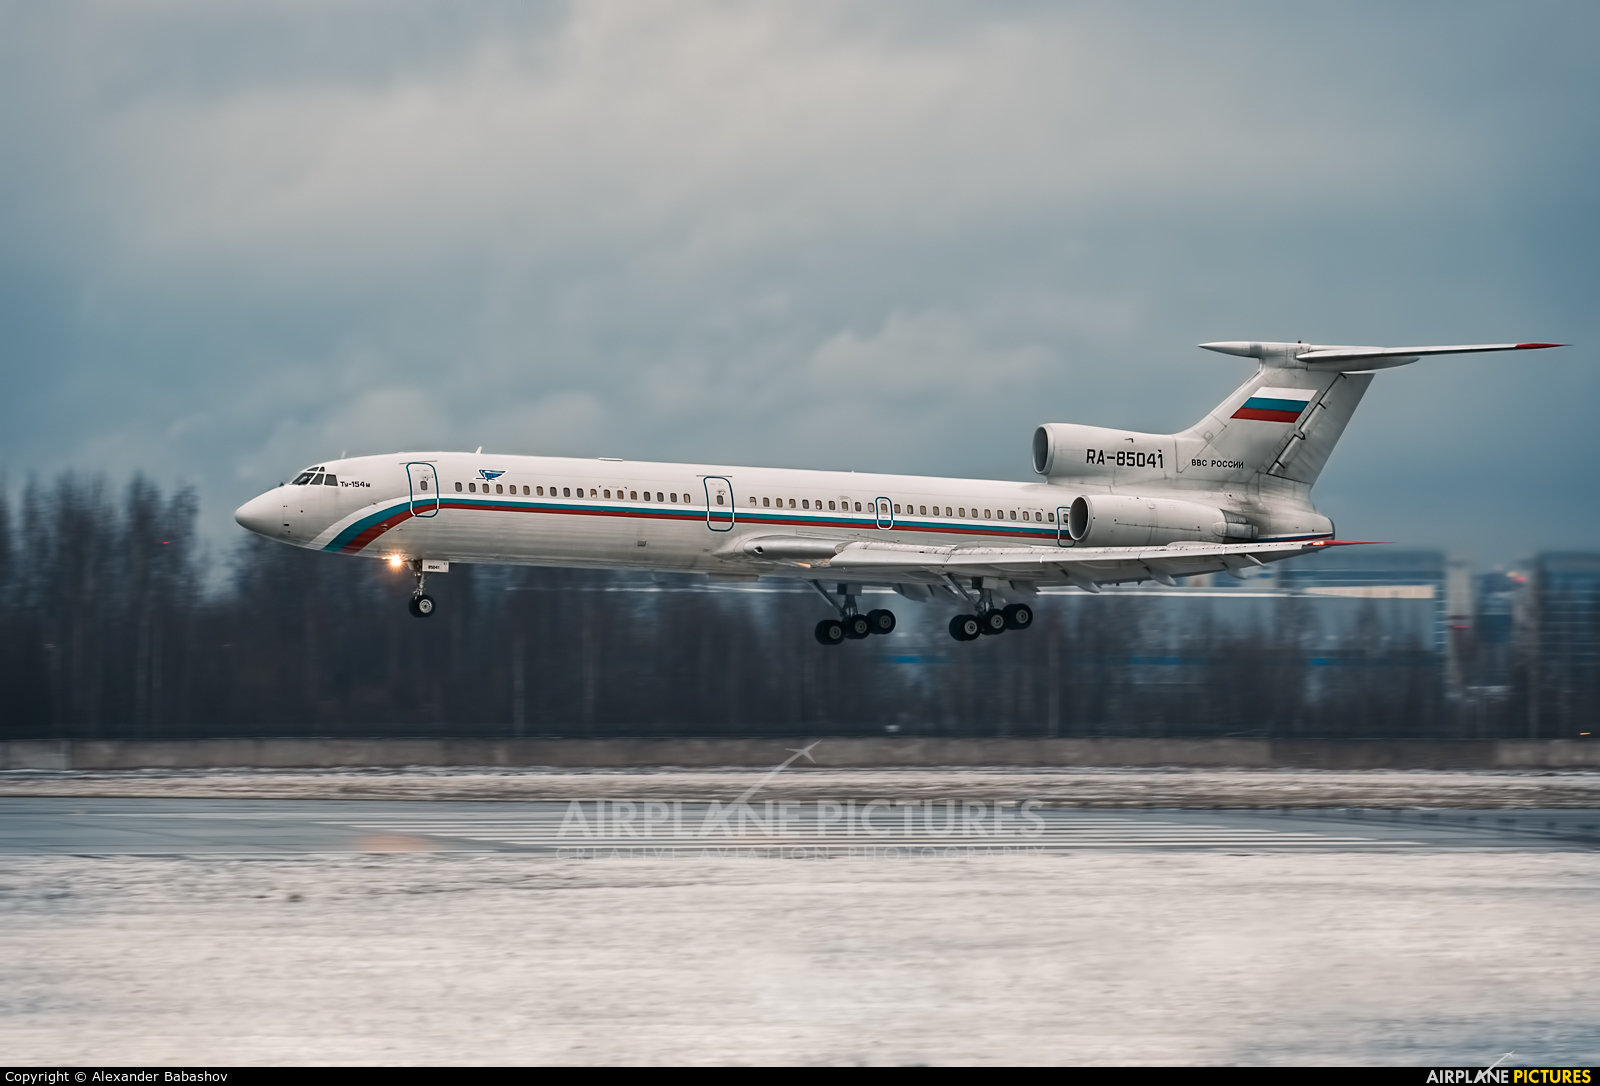 Russia - Air Force RA-85041 aircraft at St. Petersburg - Pulkovo